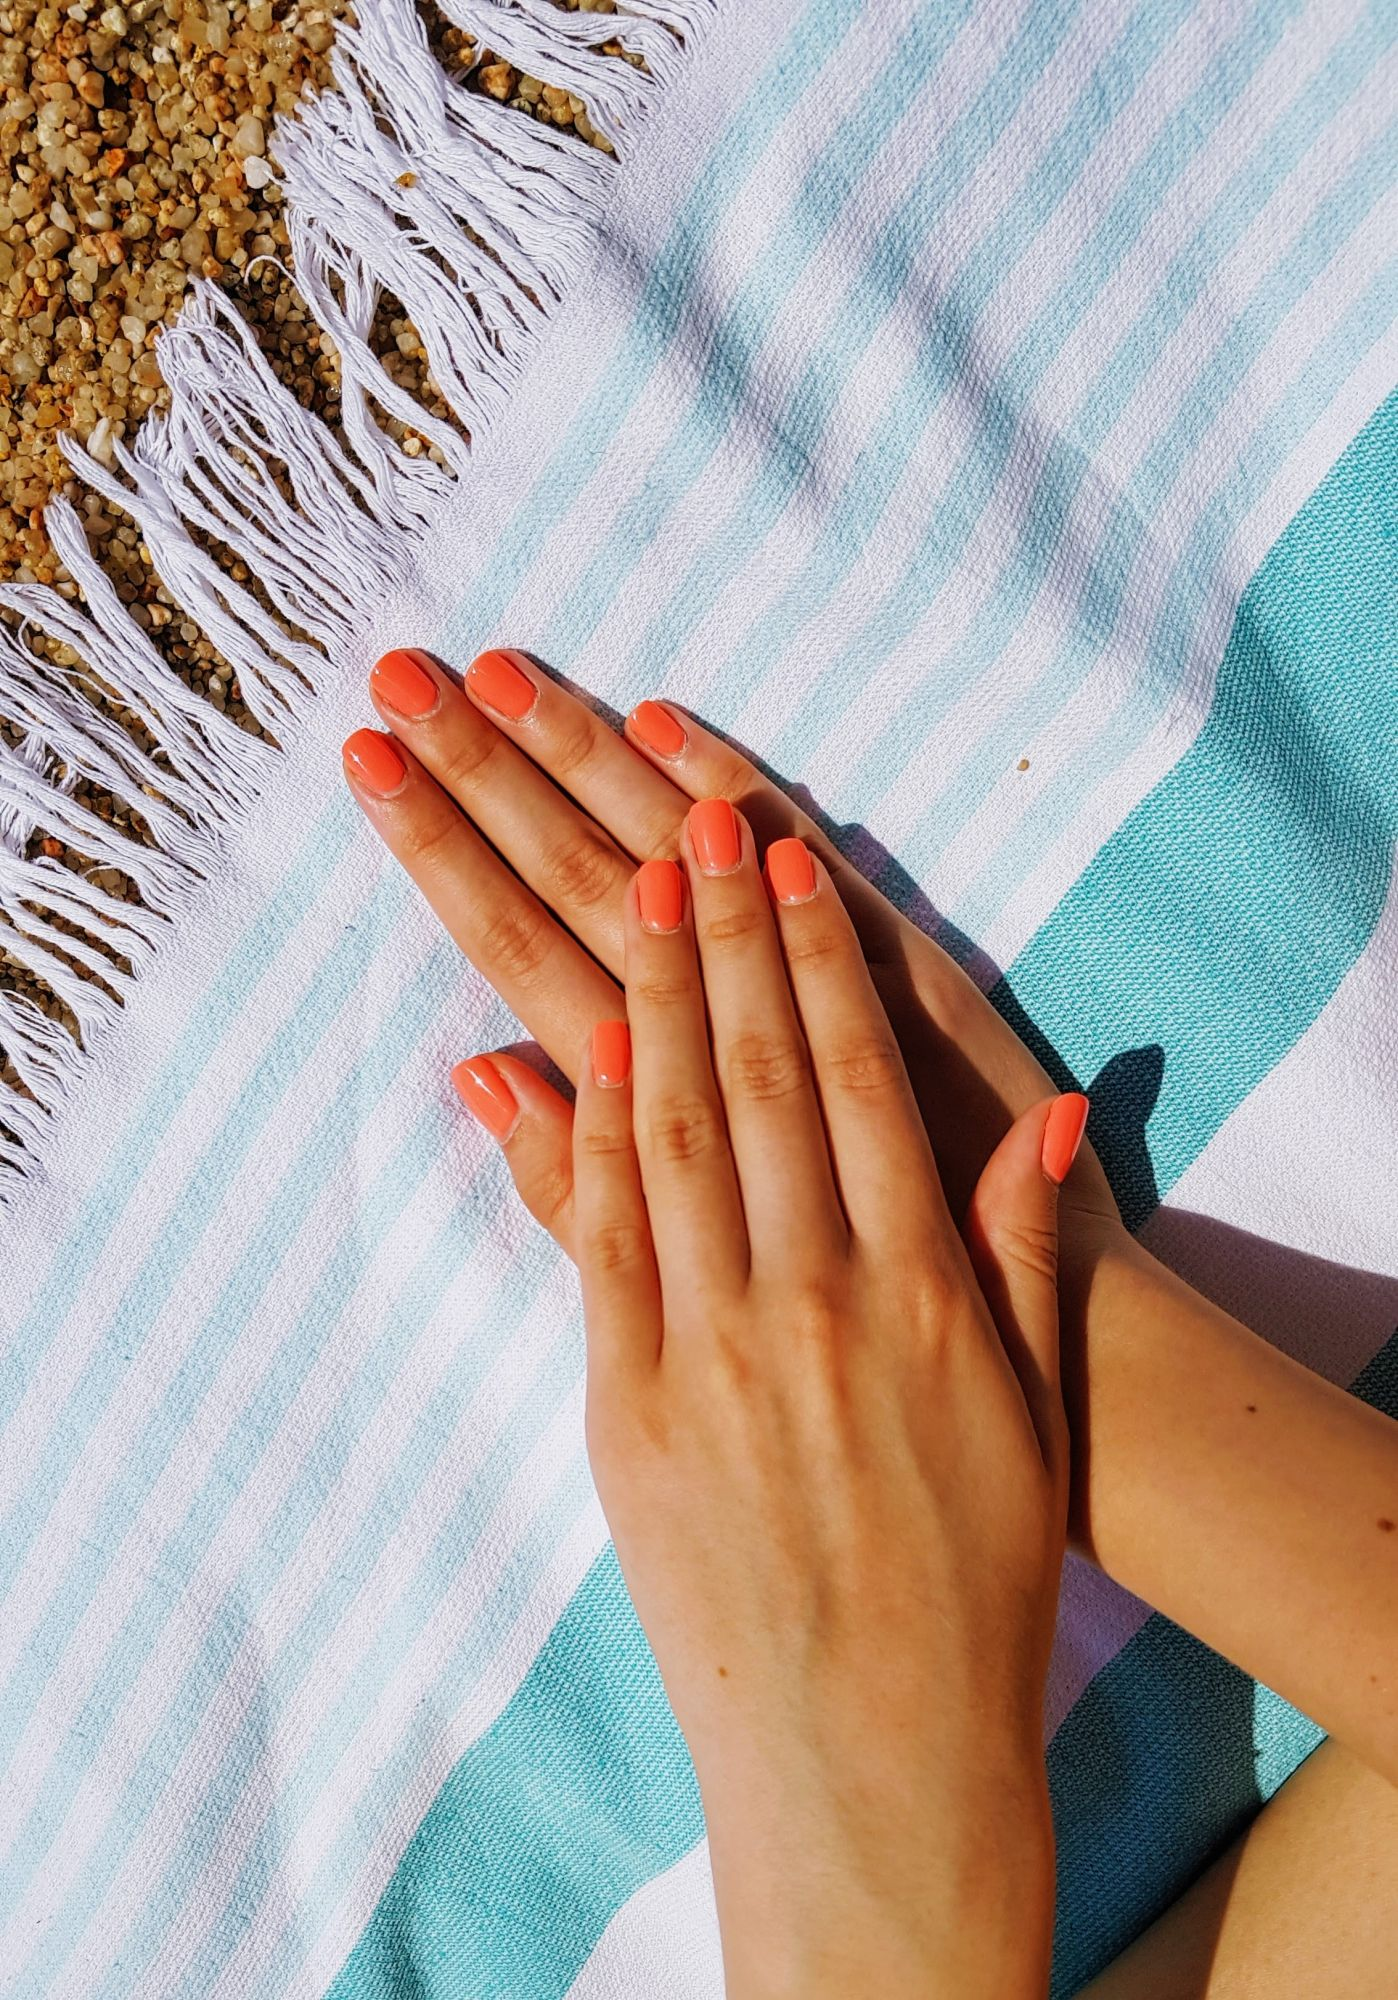 The Best Summer Nail Art Designs To Try In 2021